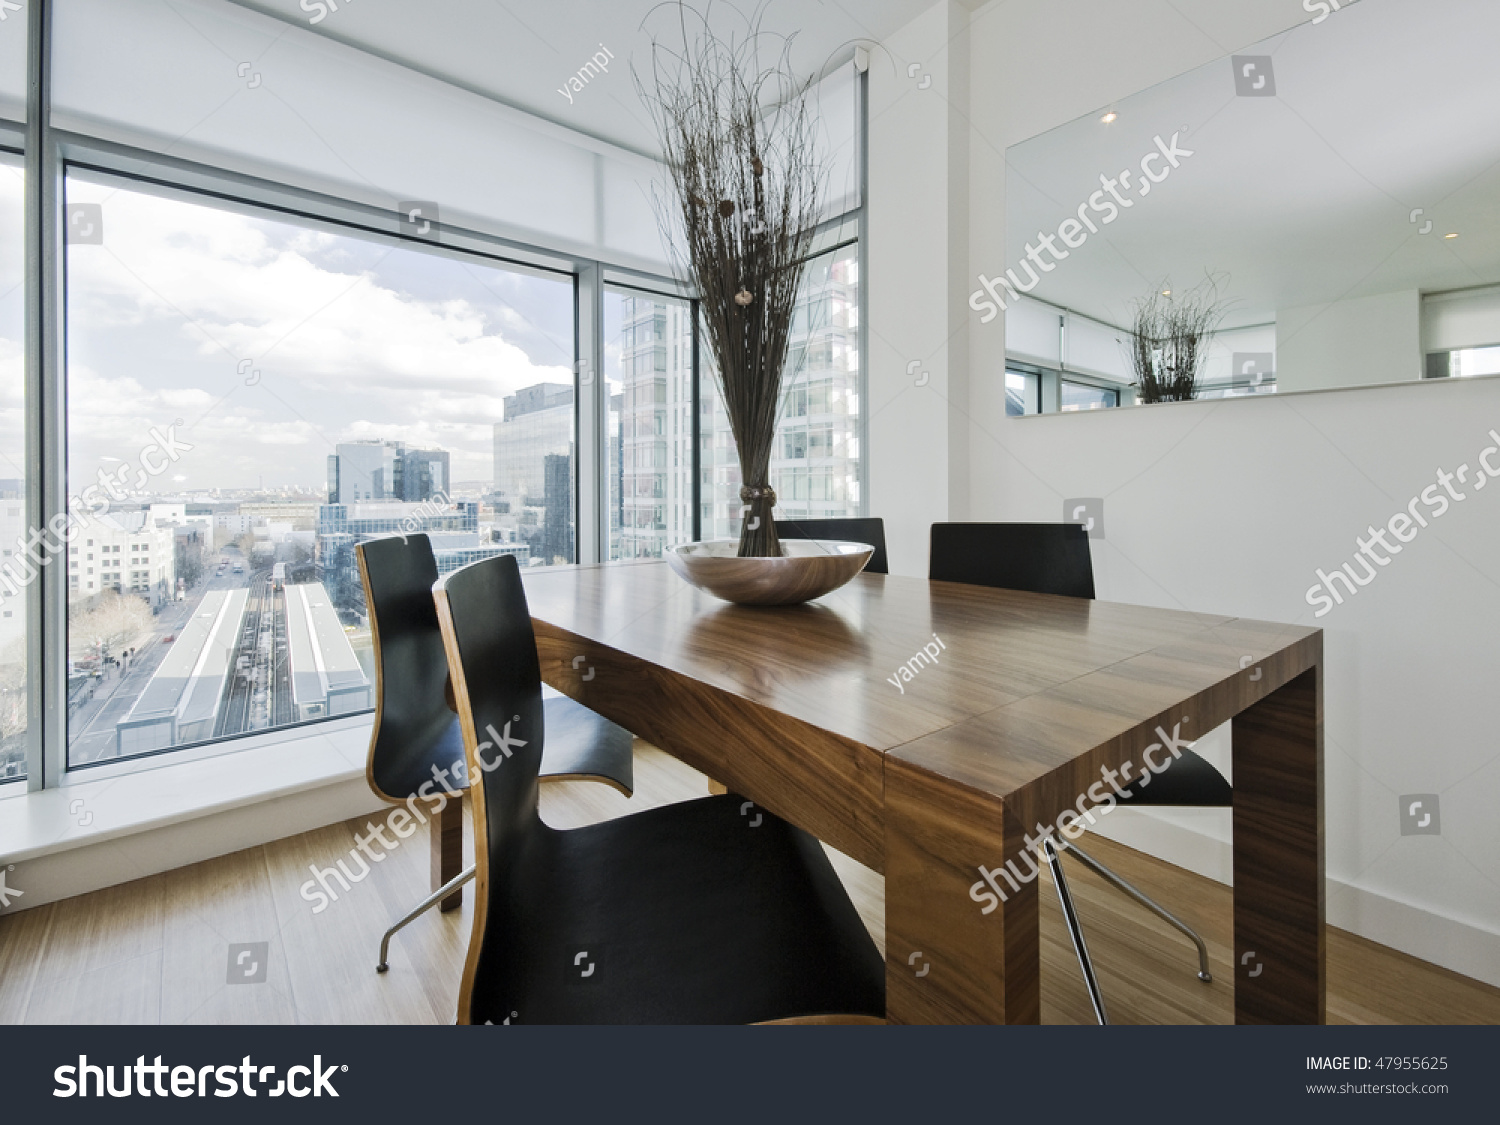 chunky dining table and chairs hard wood chunky dining table with chairs and decoration preview save to a lightbox